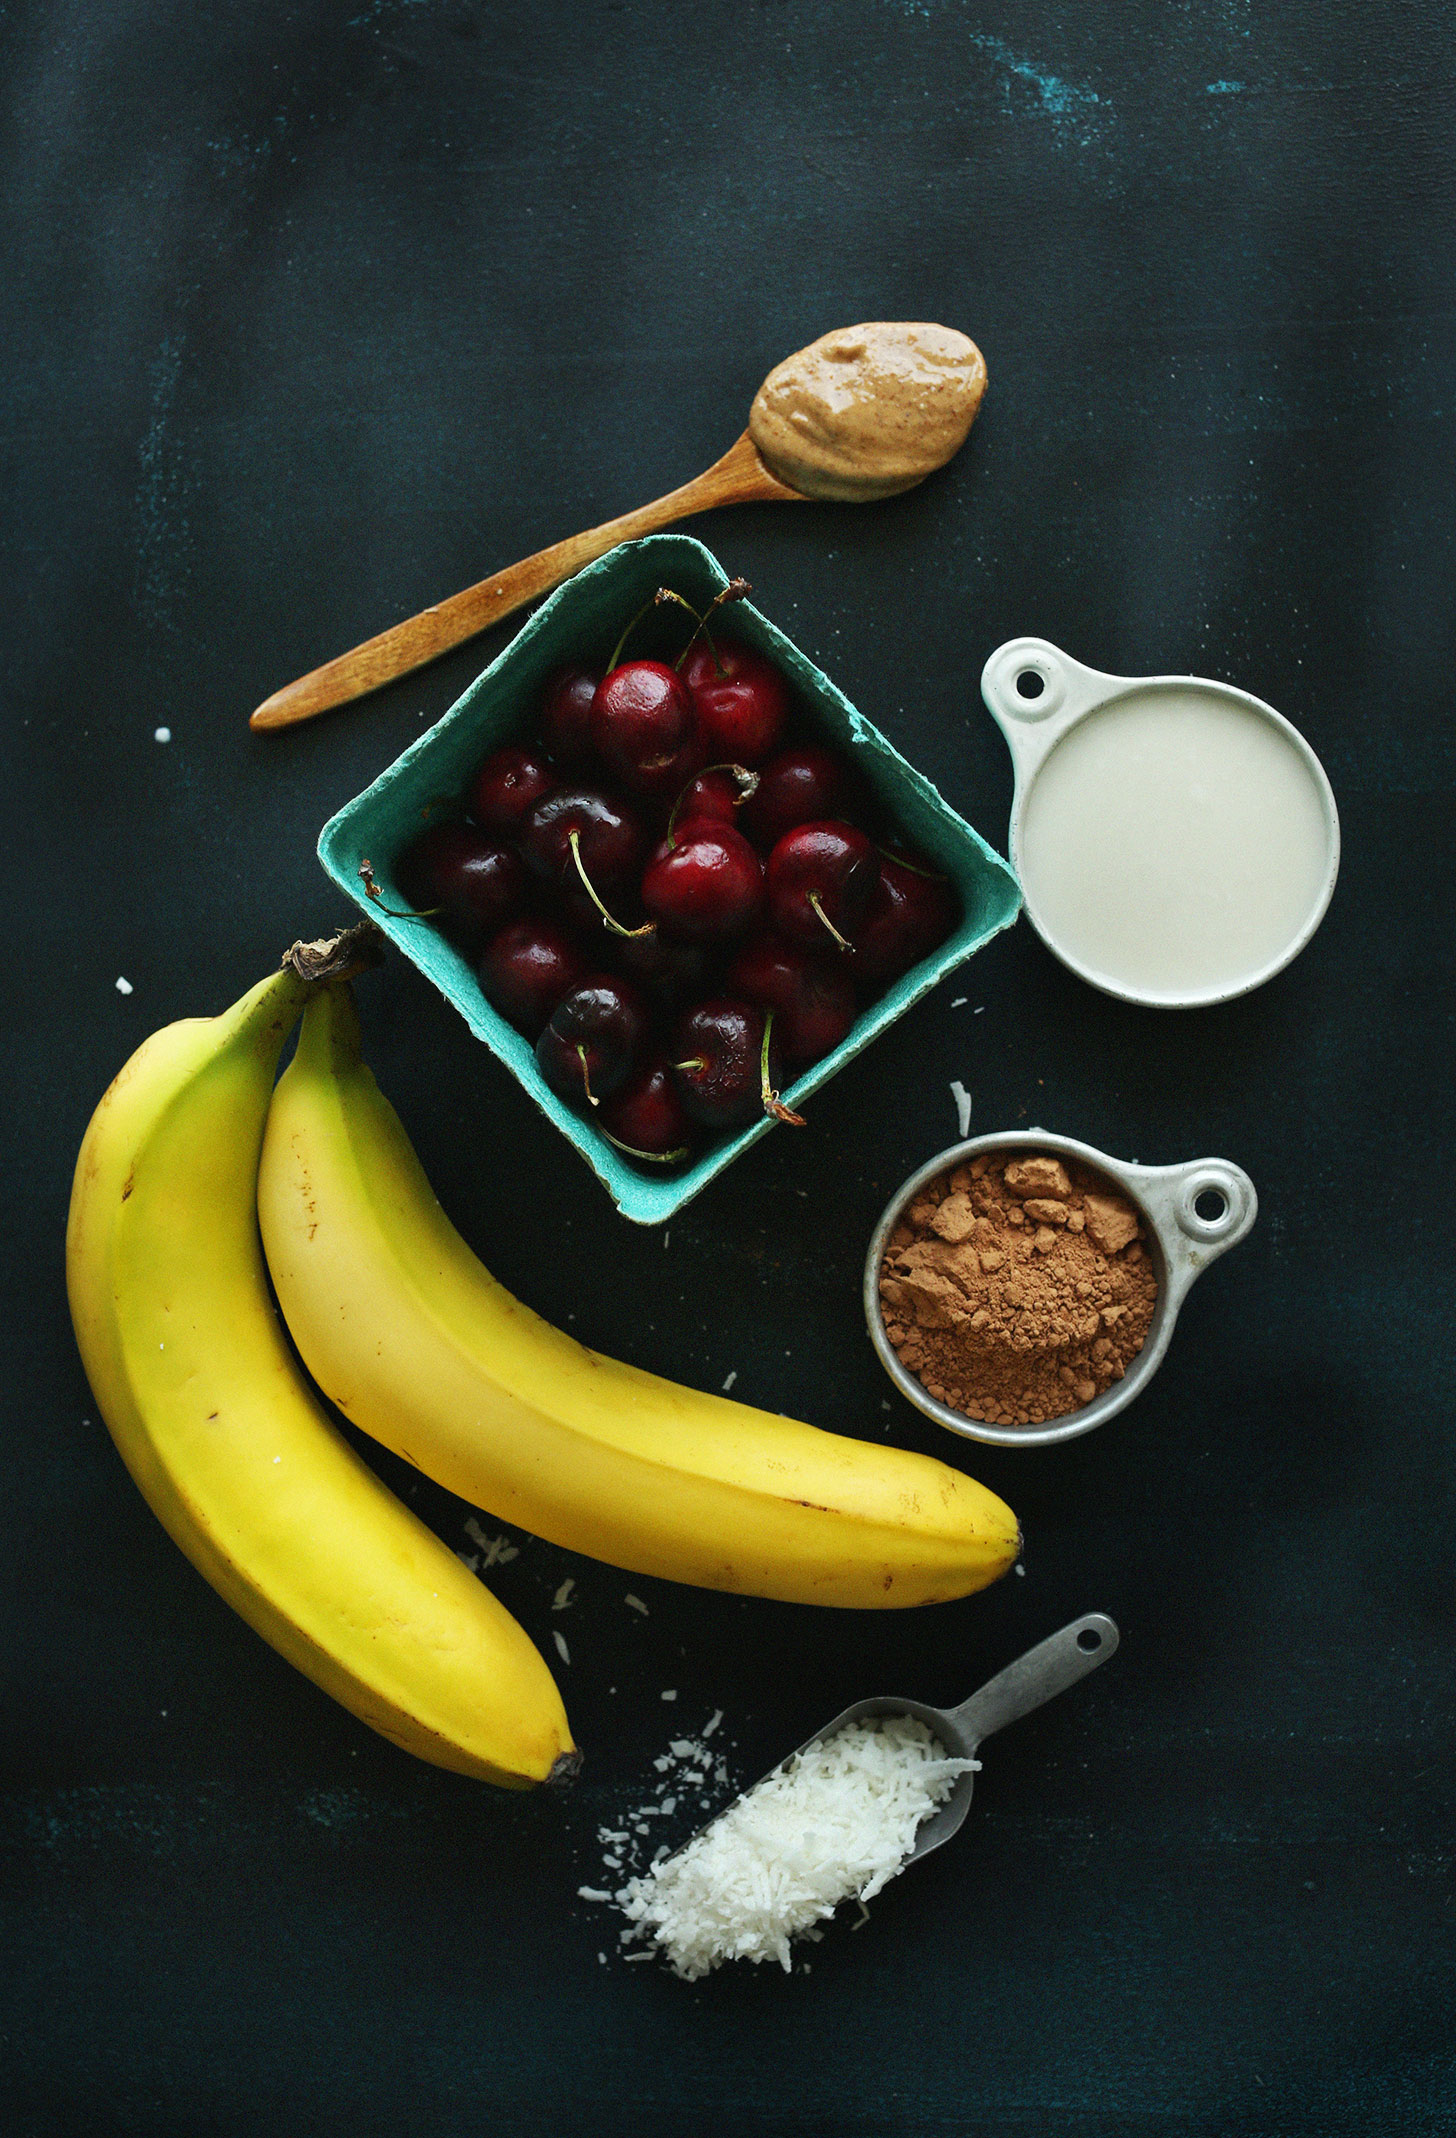 Nut butter, nut milk, cherries, bananas, cocoa powder, and shredded coconut for making our vegan Banana Split Smoothie